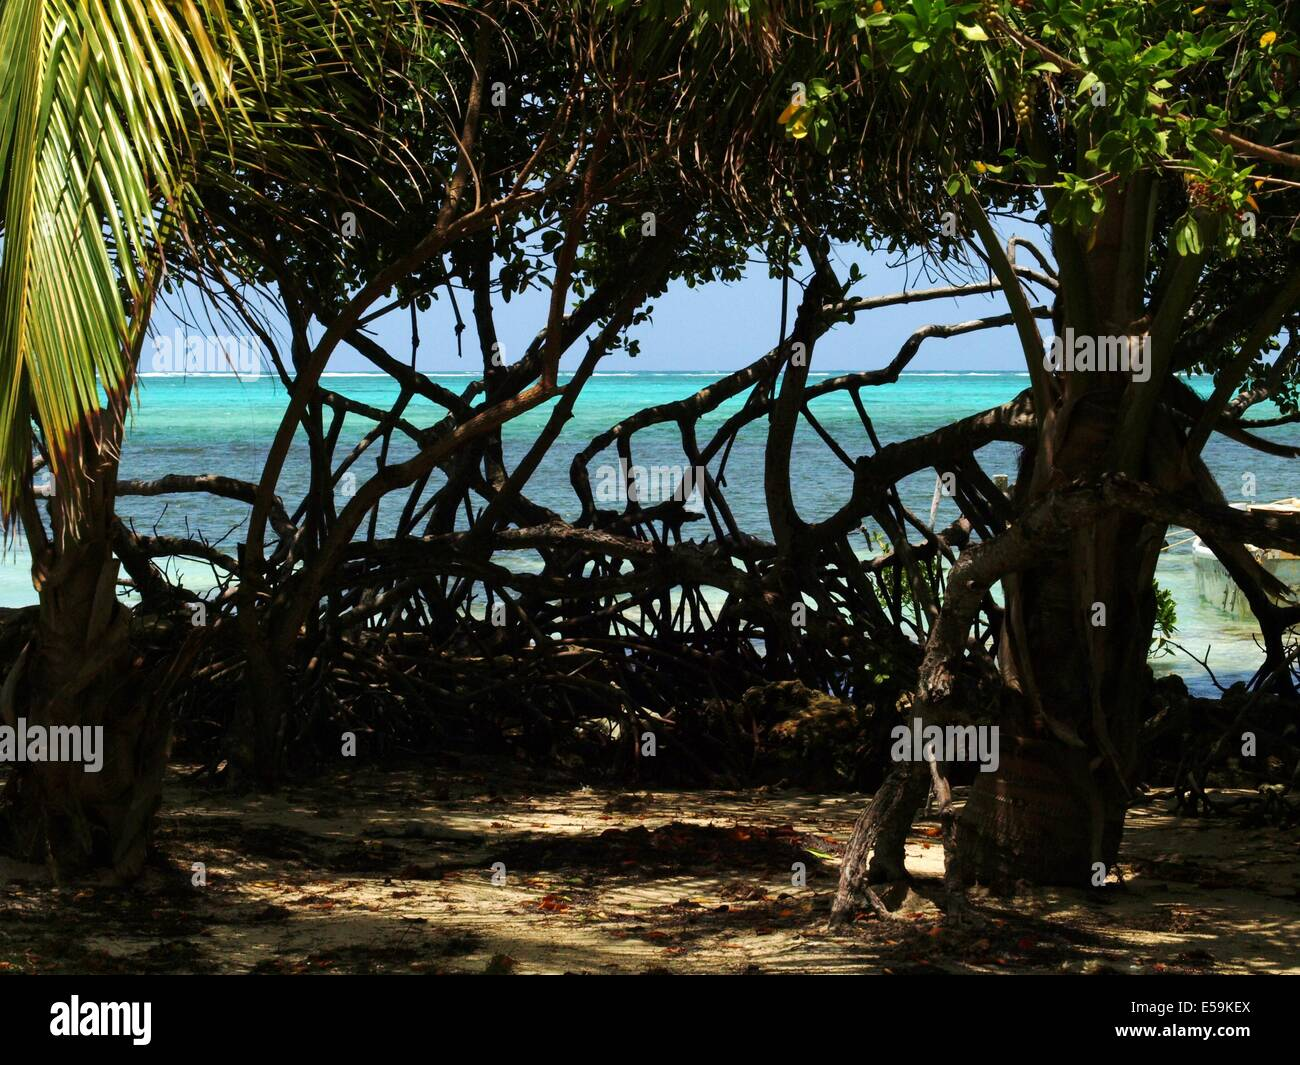 Ocean view and mangrove trees on Ambergris Caye, Belize - Stock Image